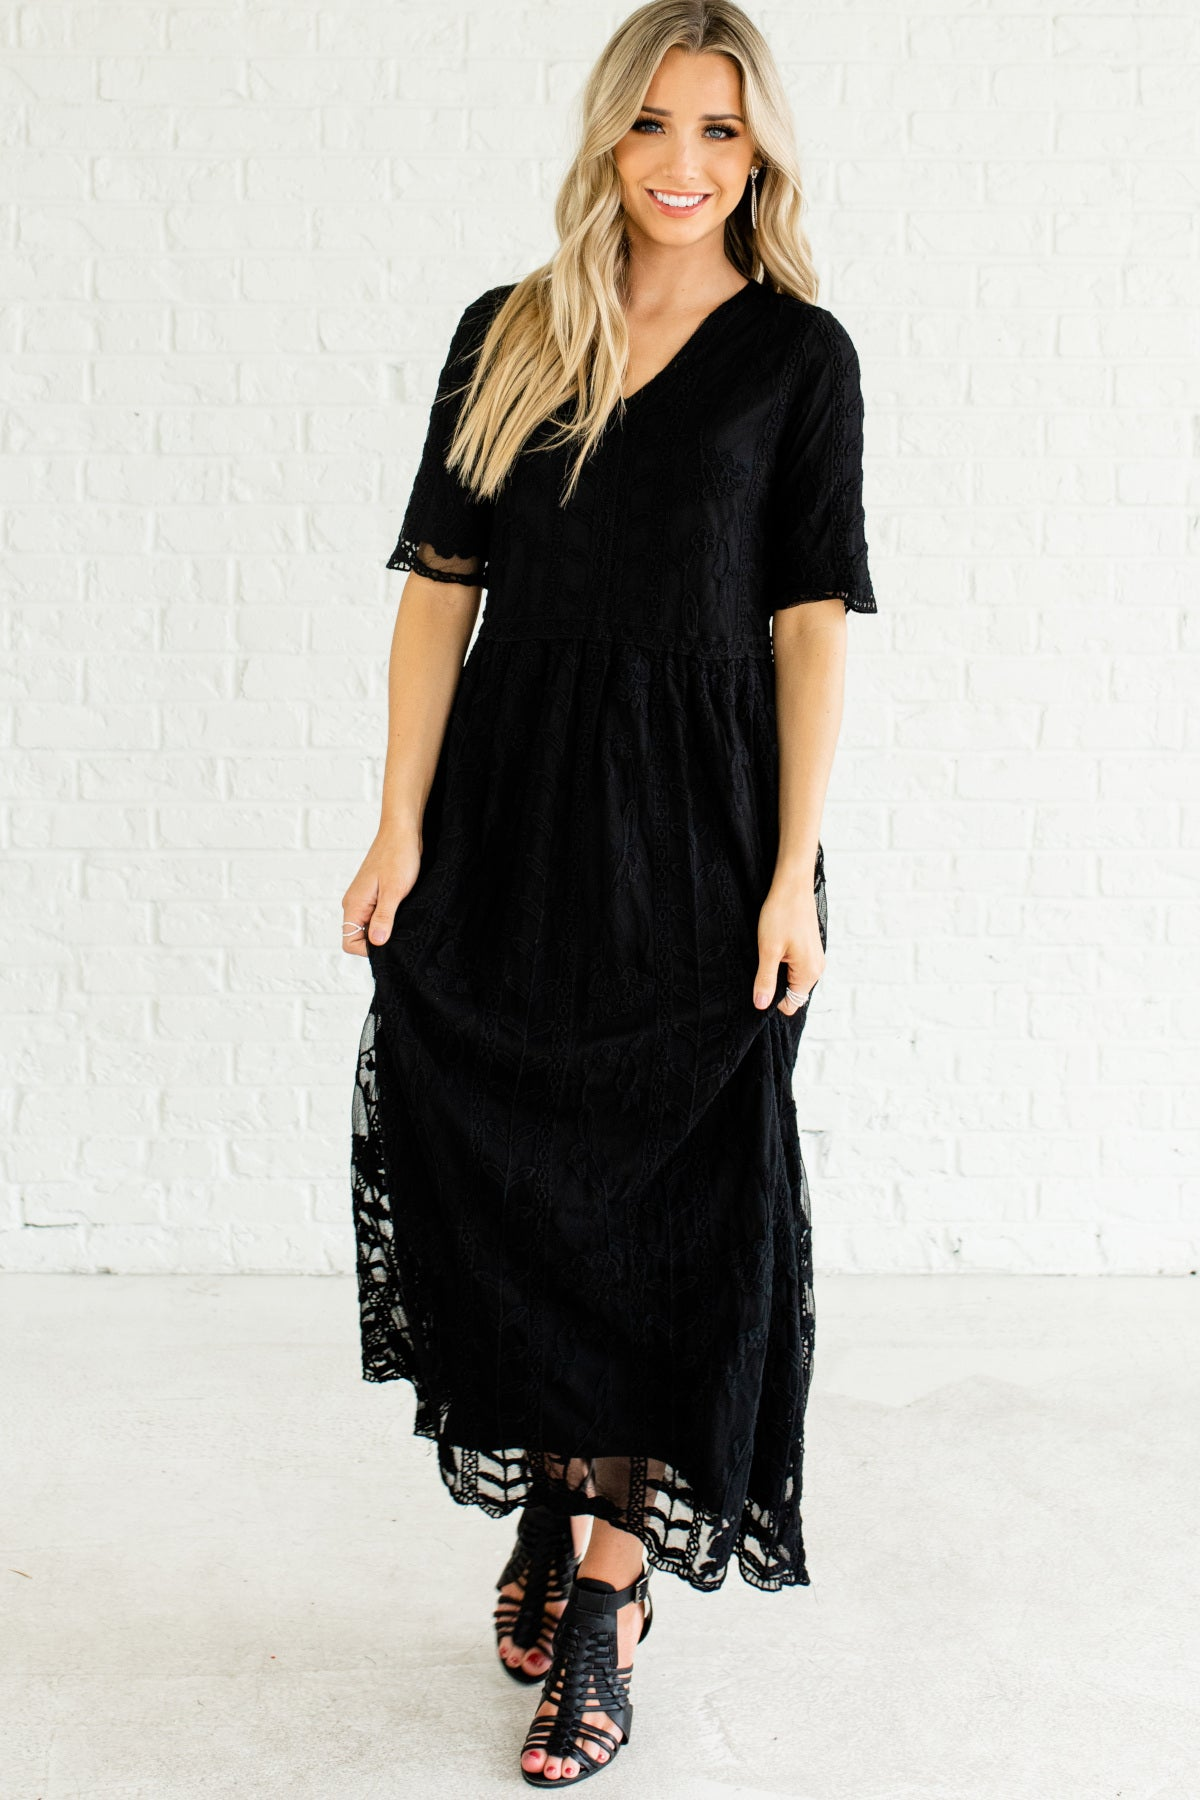 Black Embroidered Lace Boho Chic Long Maxi Dresses Affordable Online Boutique